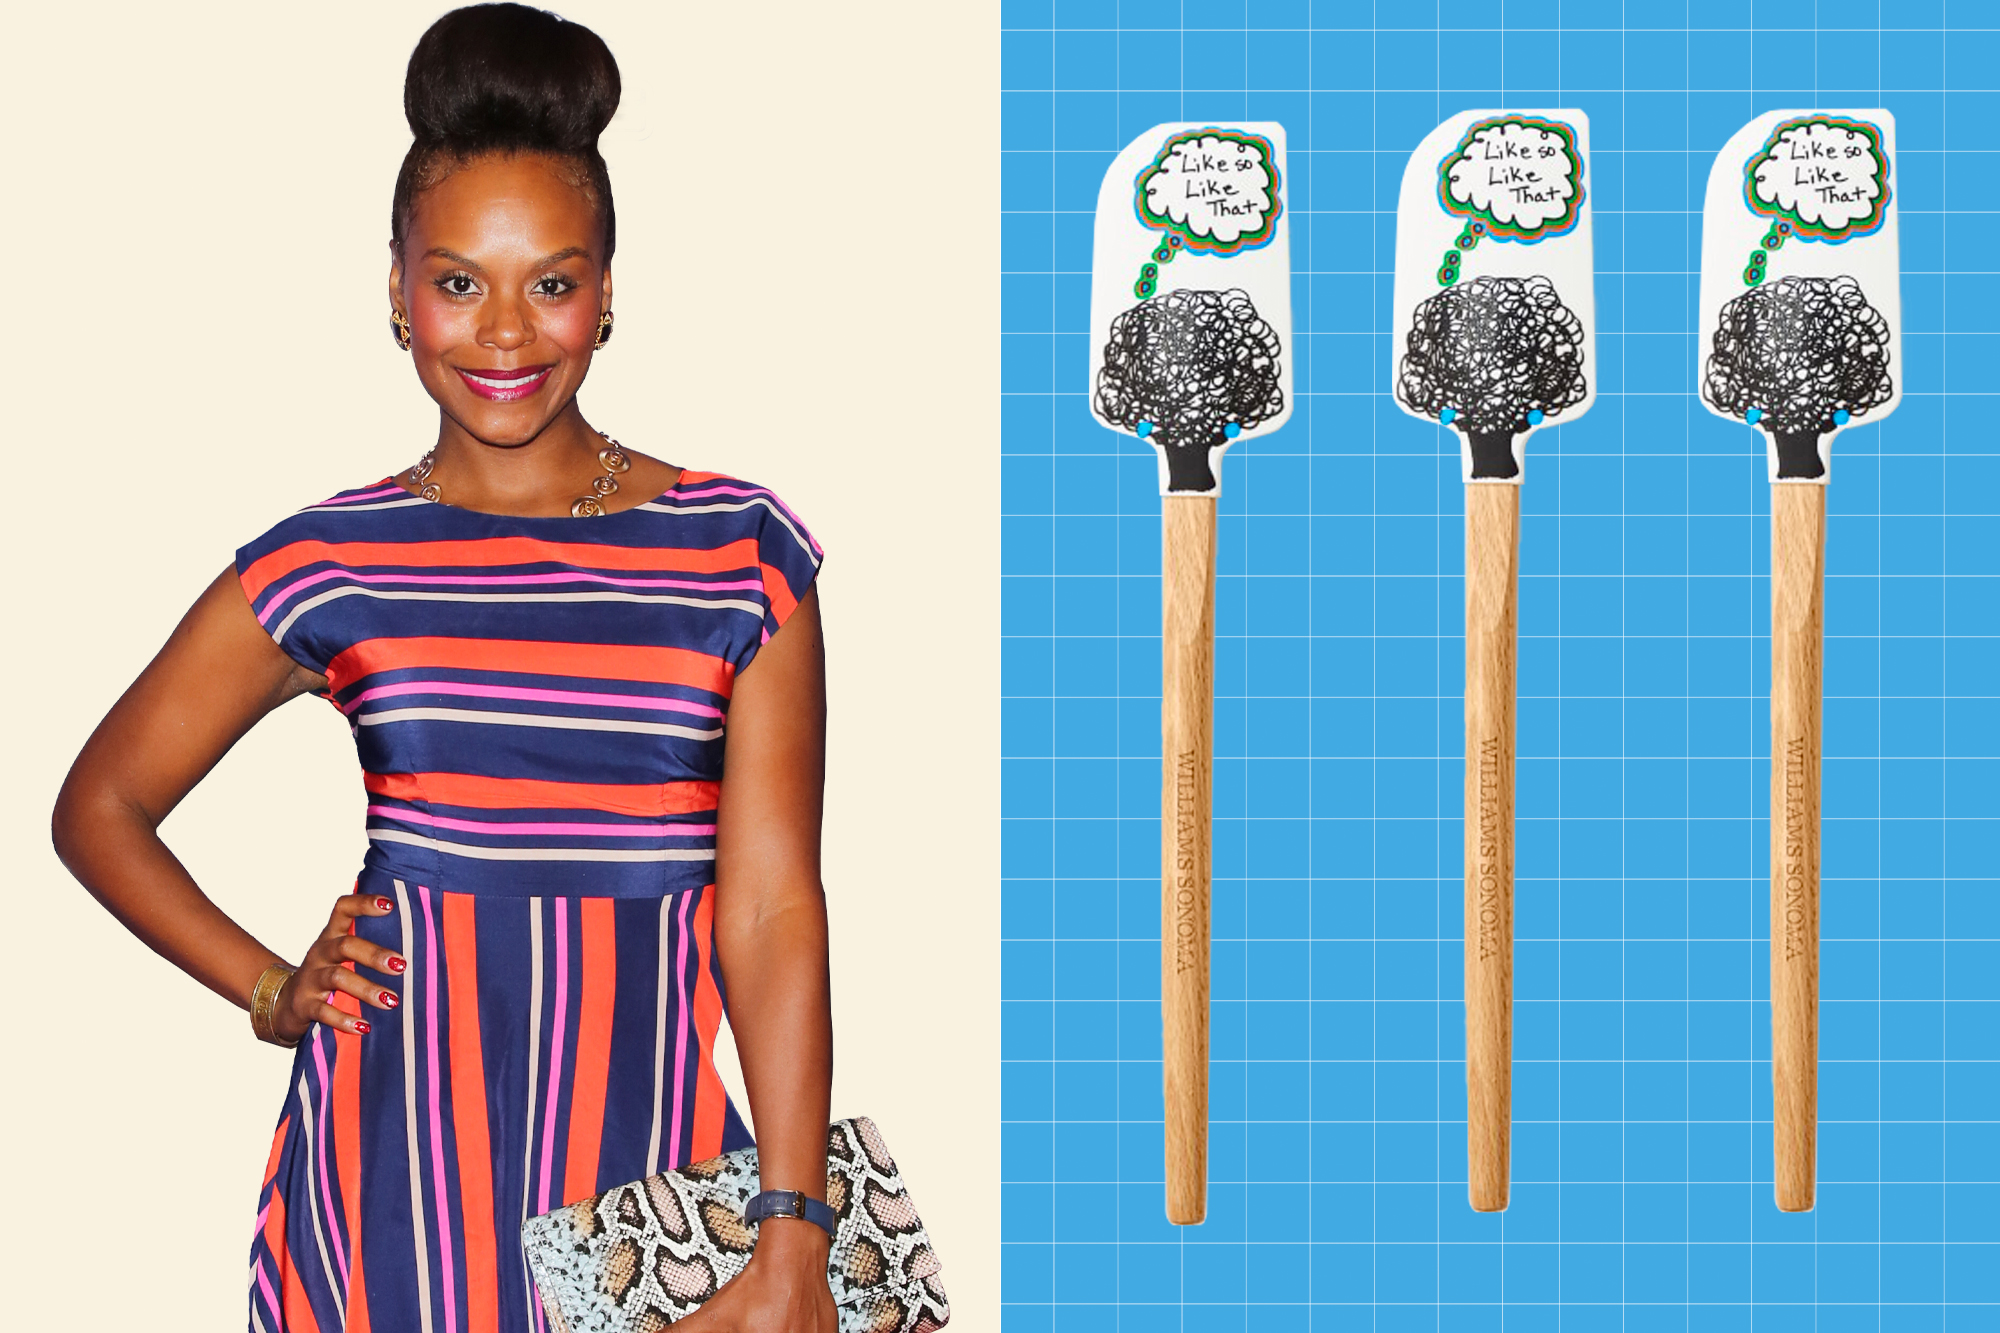 No Kid Hungry Tools for Change Silicone Spatula, Tabitha Brown and a portrait of Tabitha Brown on a designed background